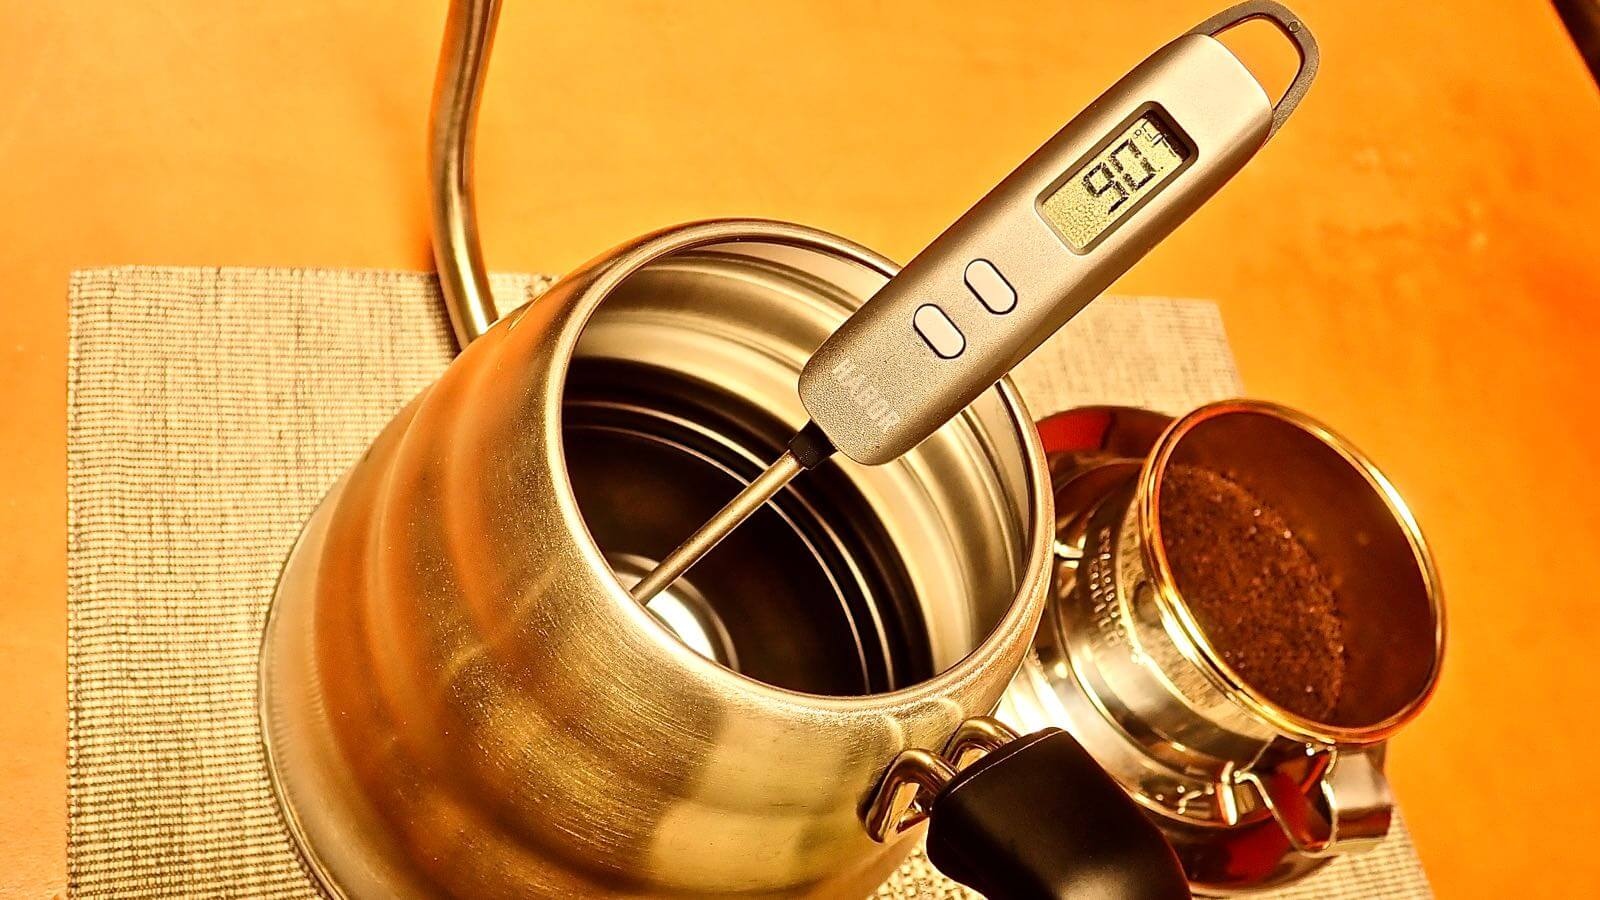 0014 Starbucks Stainless Dripper How to make delicious coffee 07